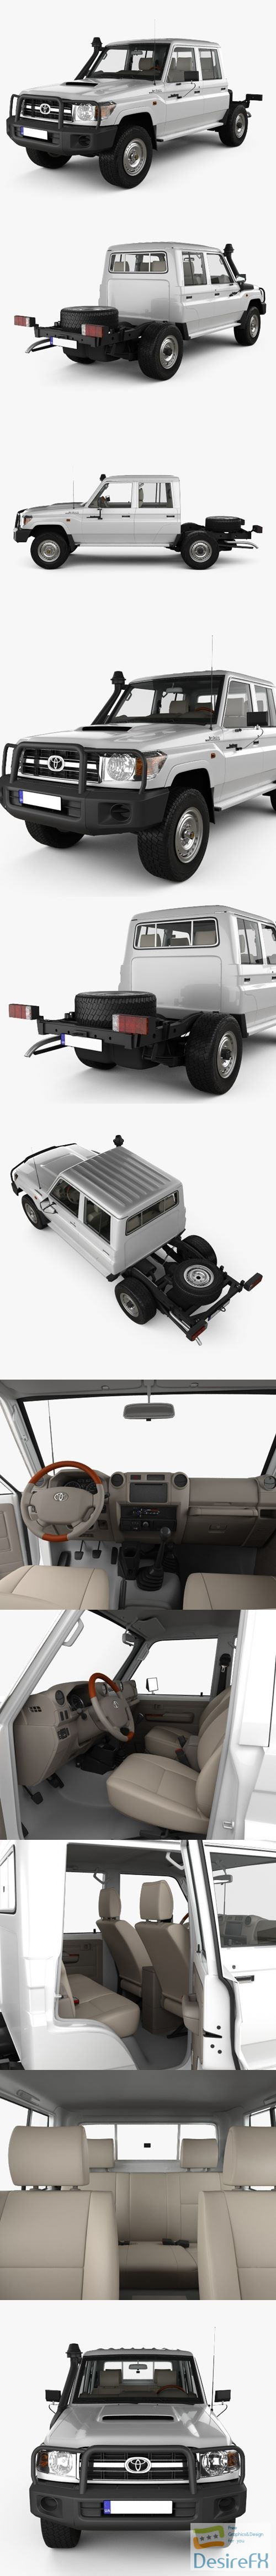 3d-models - Toyota Land Cruiser Double Cab Chassis 2012 with HQ interior 3D Model